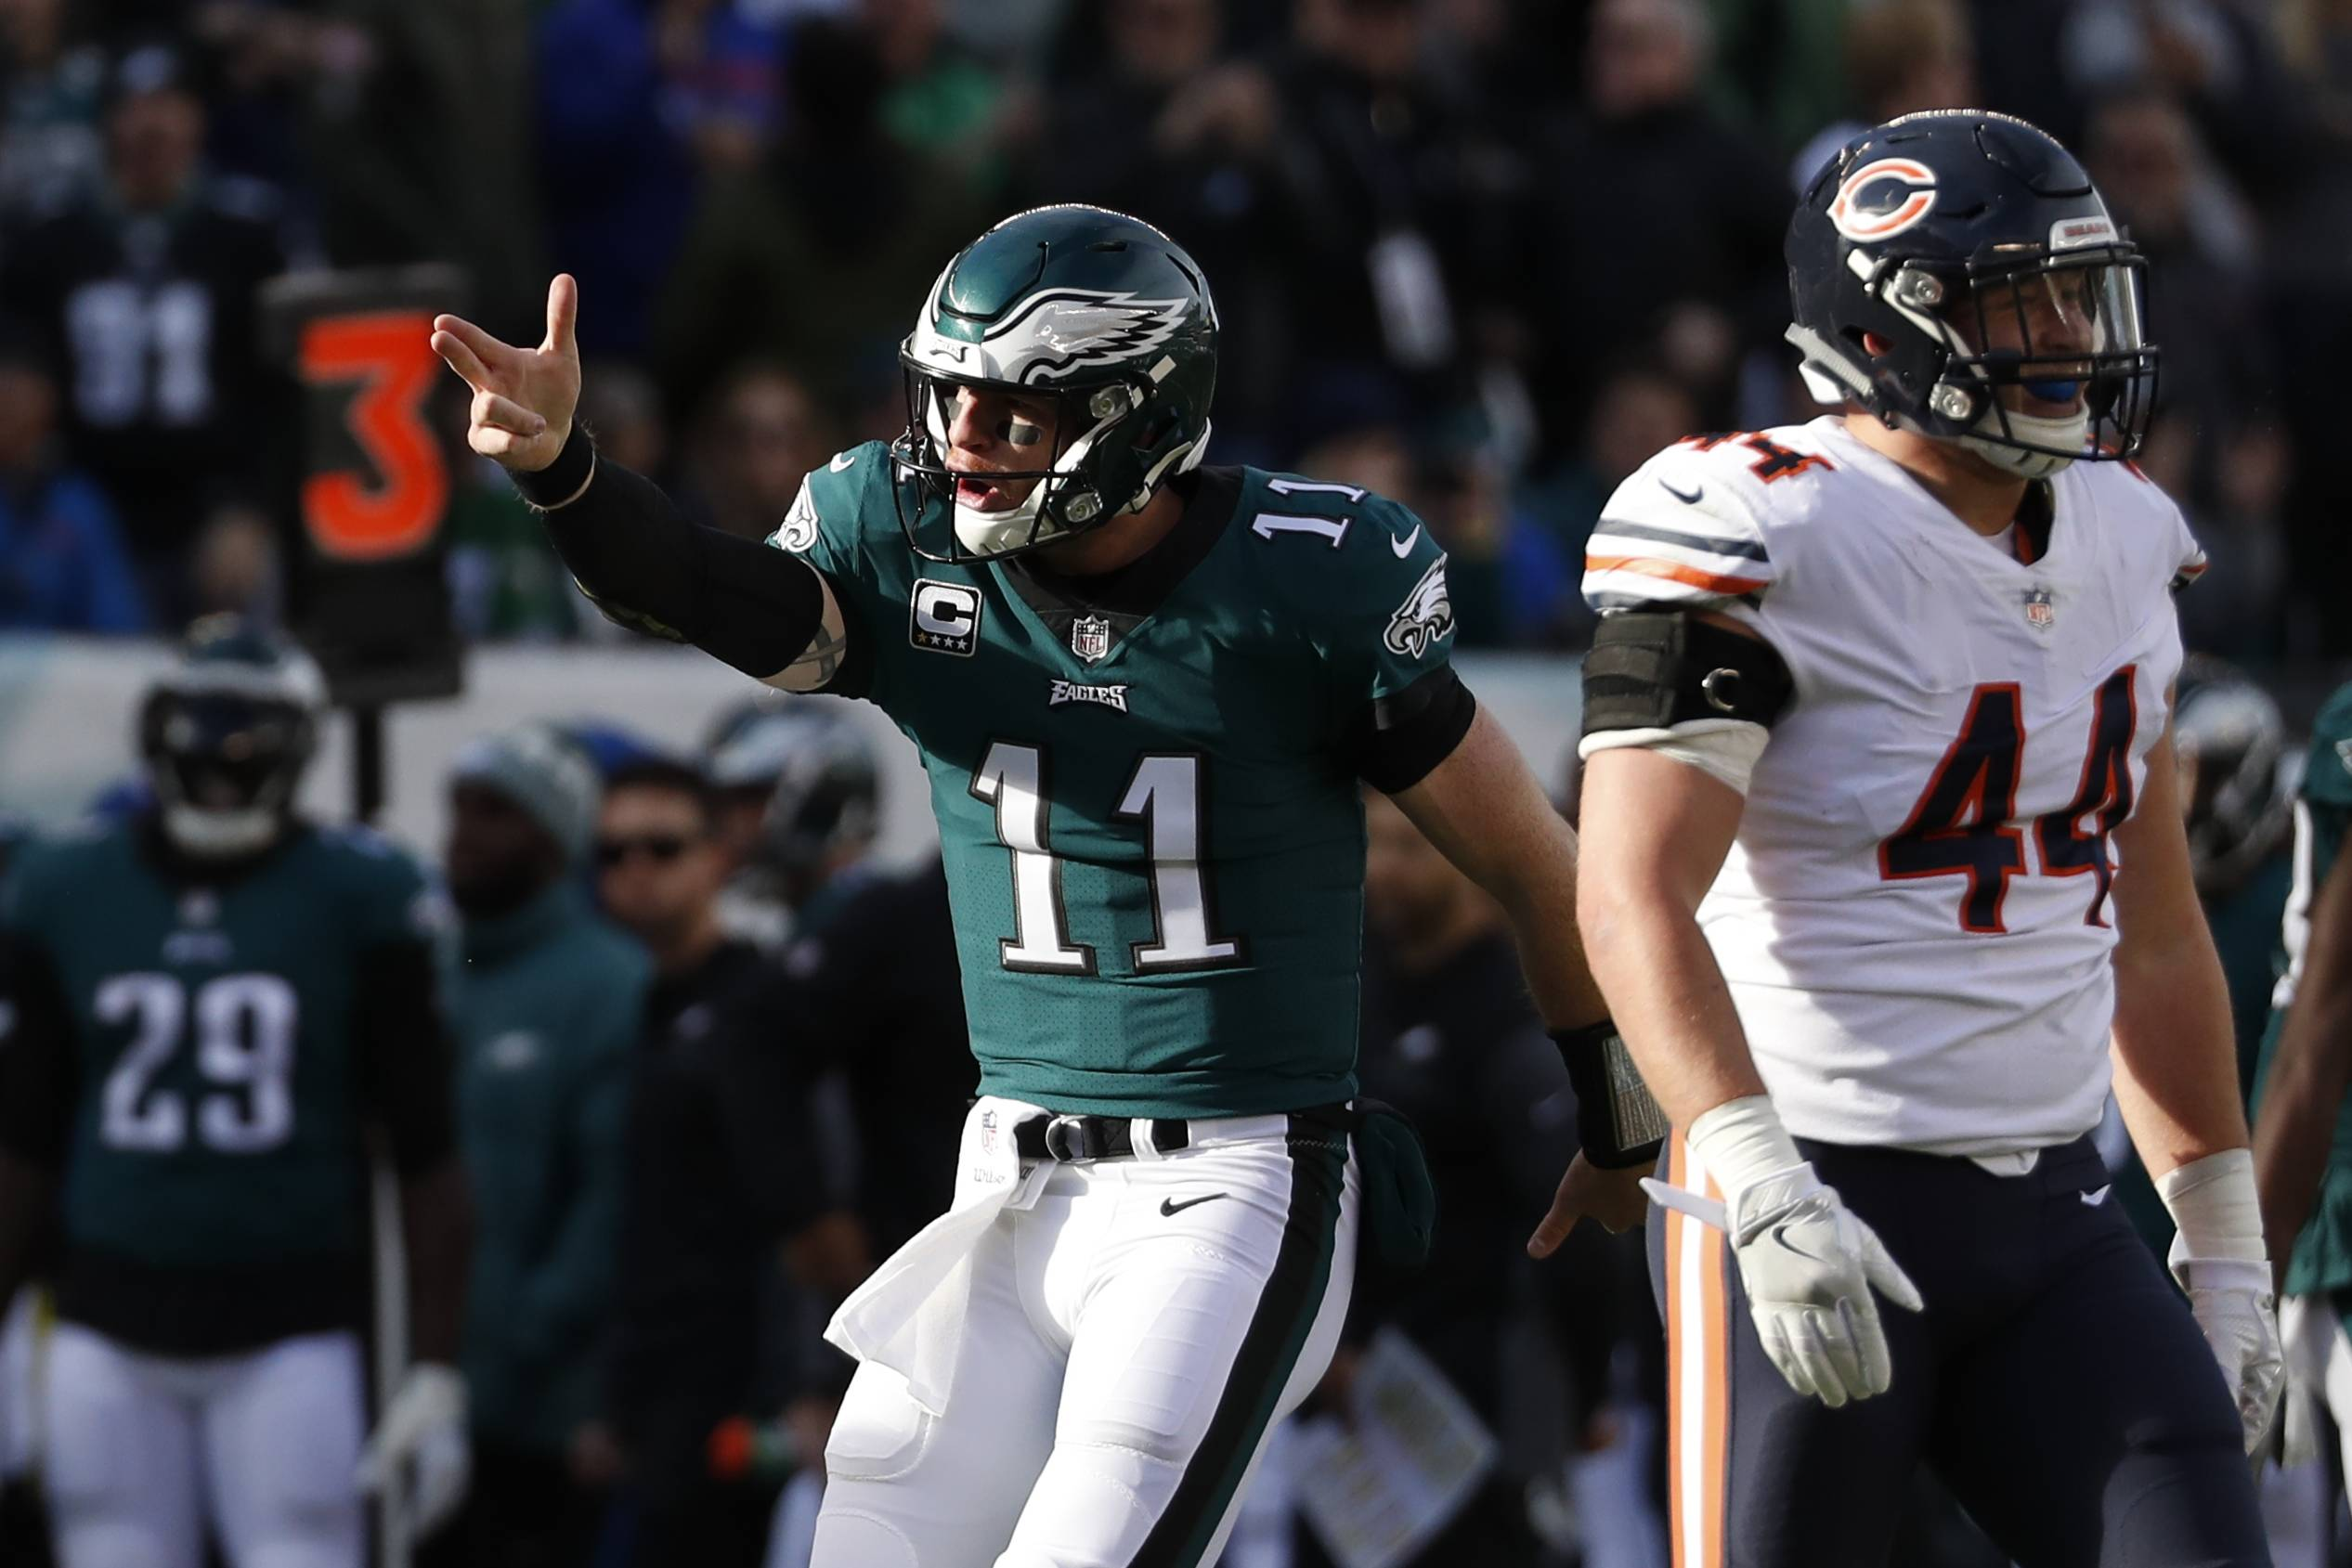 Philadelphia Eagles' Carson Wentz (11) reacts after running for a first down during the first half of an NFL football game against the Chicago Bears, Sunday, Nov. 26, 2017, in Philadelphia.